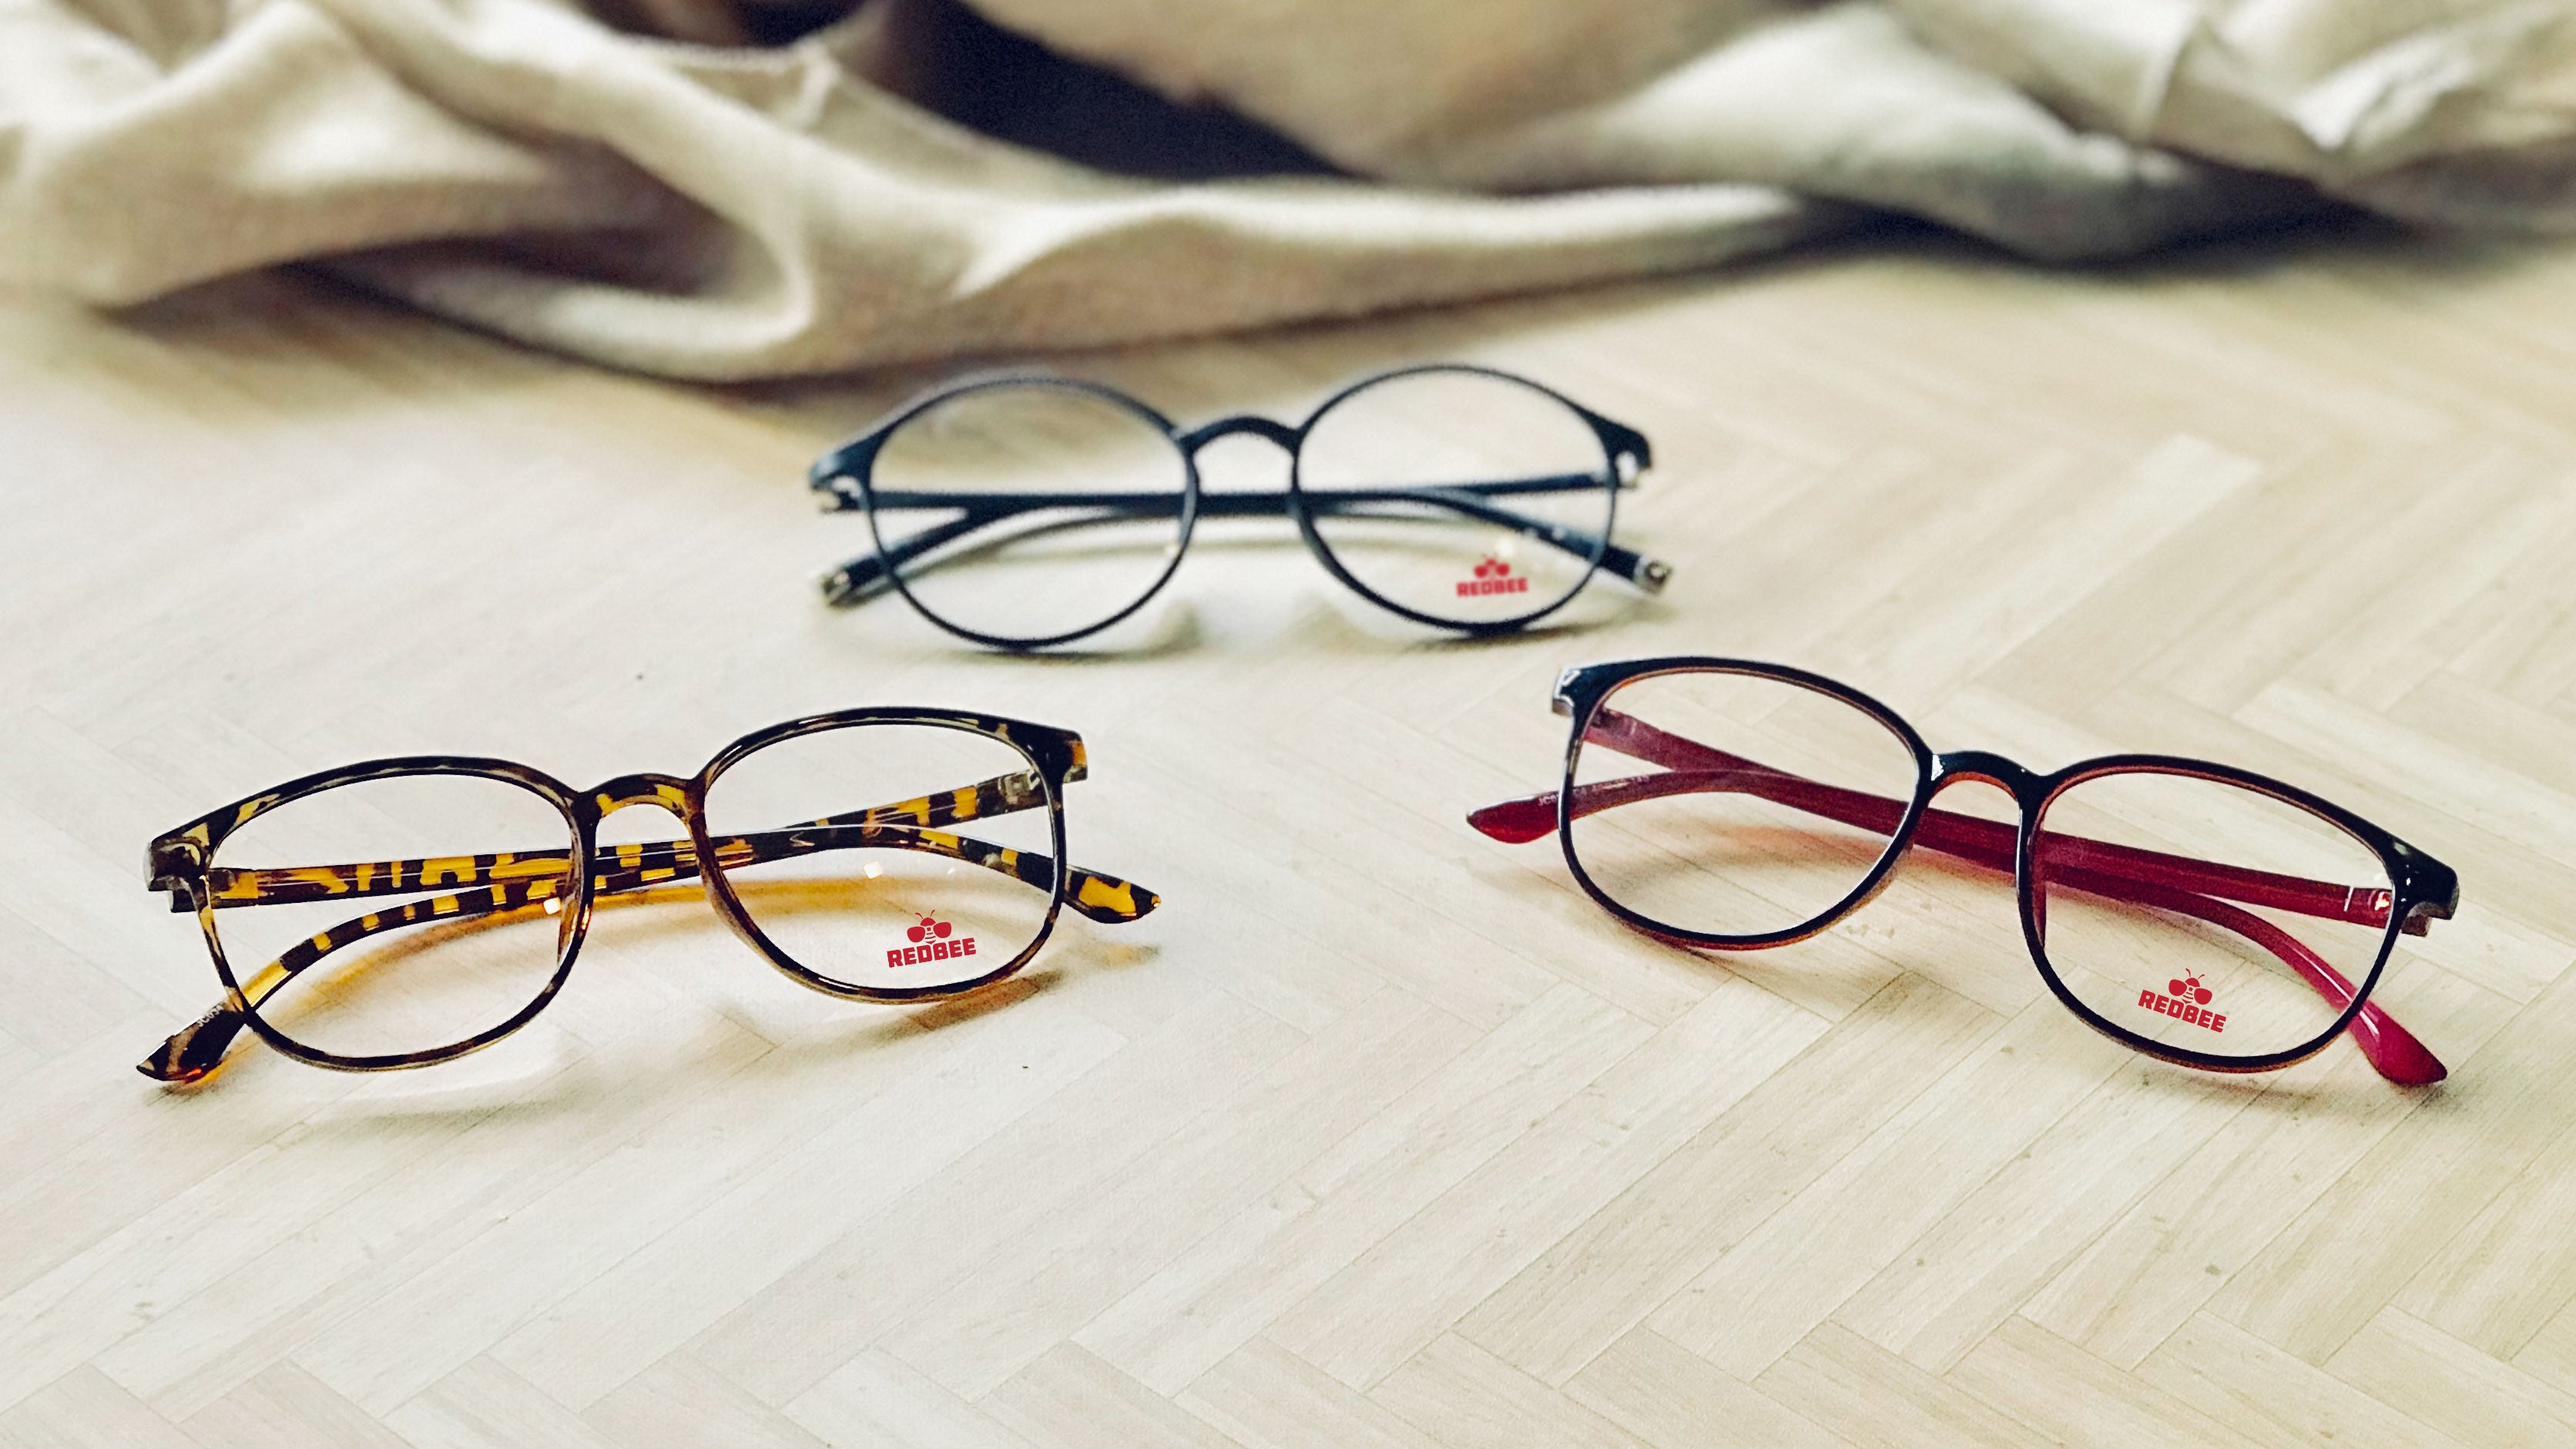 Red Bee Glasses